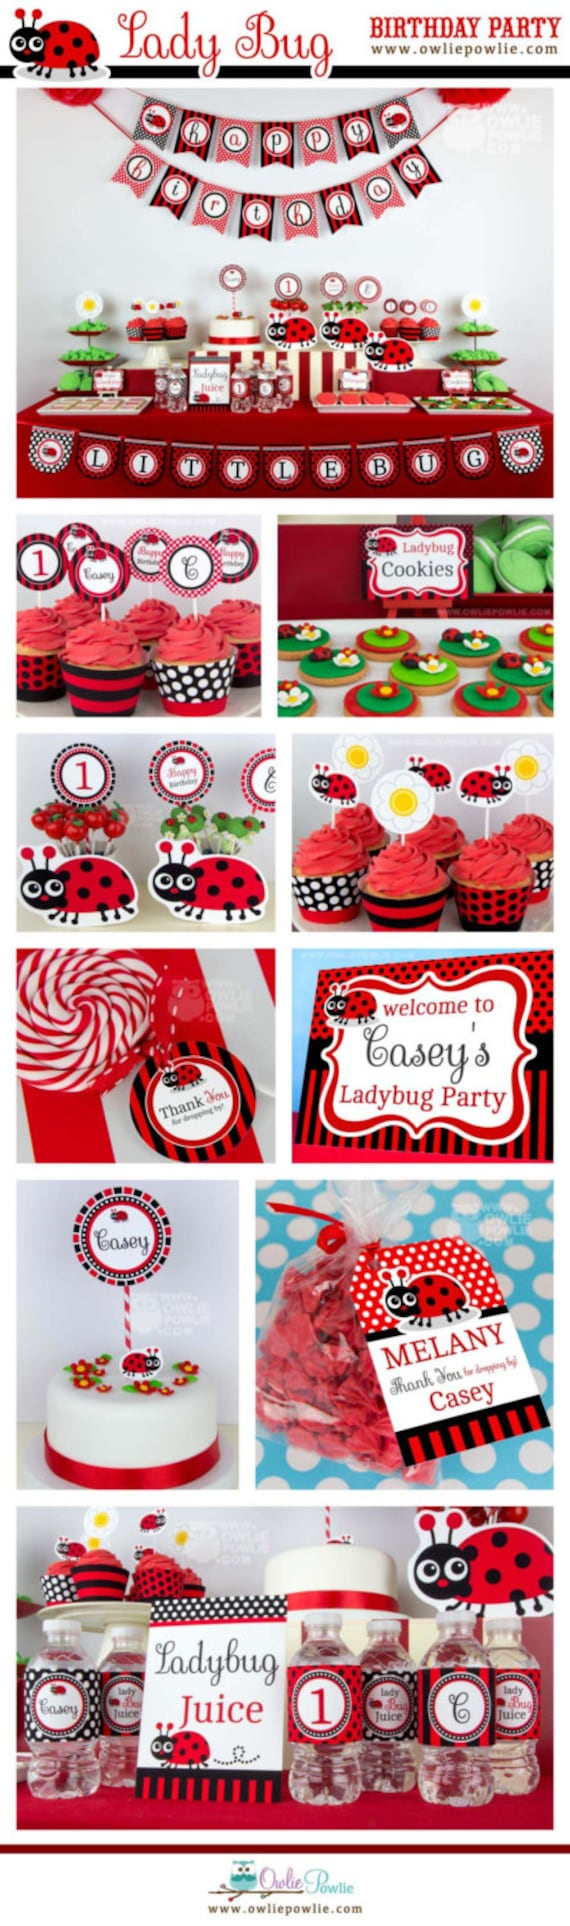 Lady Bug BIRTHDAY Party Printable Package & Invitation | Etsy